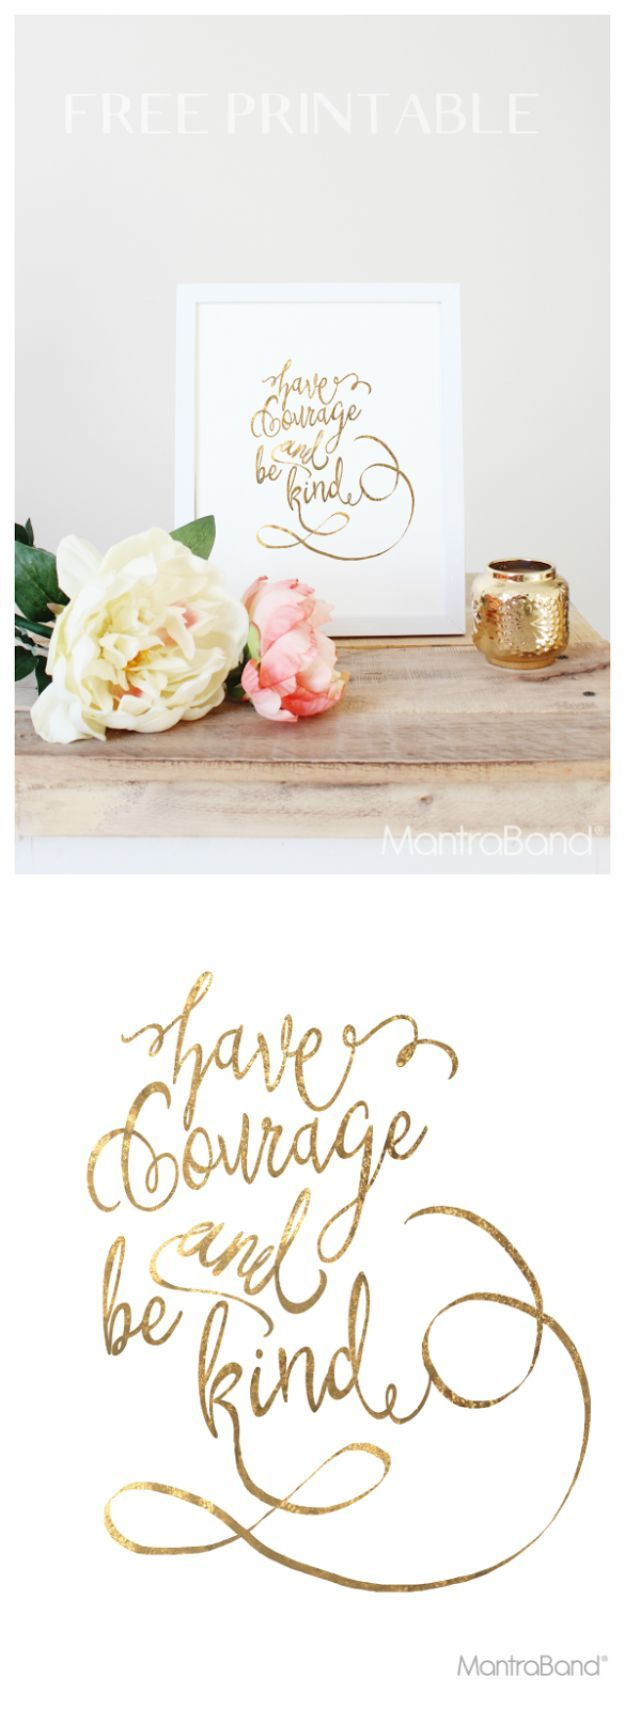 Best Free Printables For Your Walls - Have Courage And Be Kind Printable Quote - Free Prints for Wall Art and Picture to Print for Home and Bedroom Decor - Crafts to Make and Sell With Ideas for the Home, Organization - Quotes for Bedroom, Living Room and Kitchens, Vintage Bathroom Pictures - Downloadable Printable for Kids - DIY and Crafts by DIY JOY http://diyjoy.com/free-printables-walls